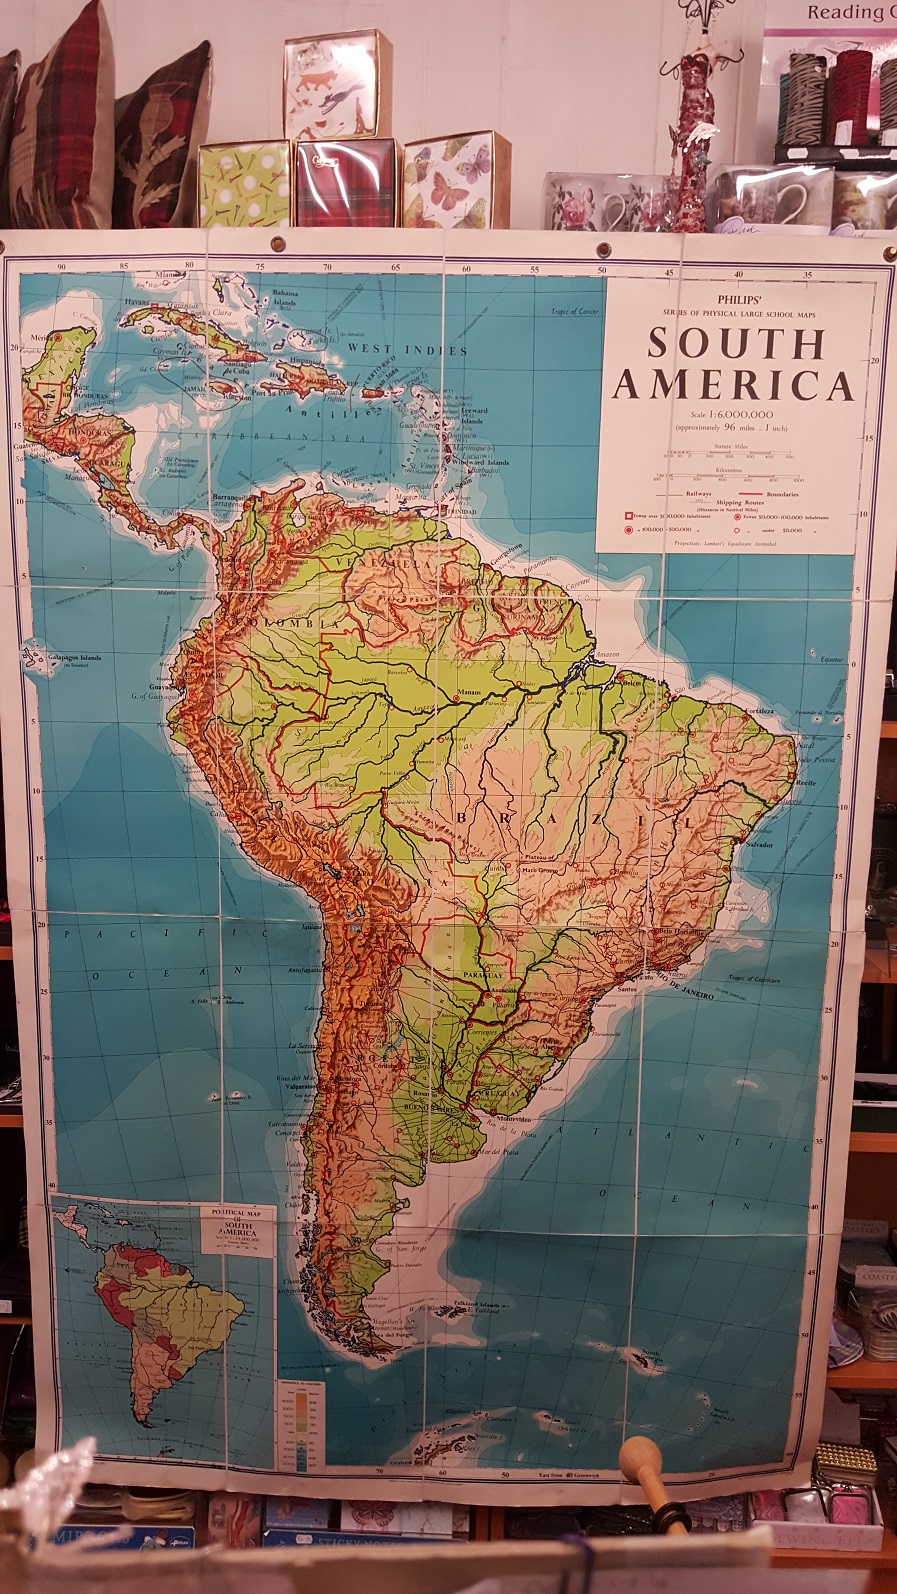 Image for Philips' Large School-Room Map of South America - Physical